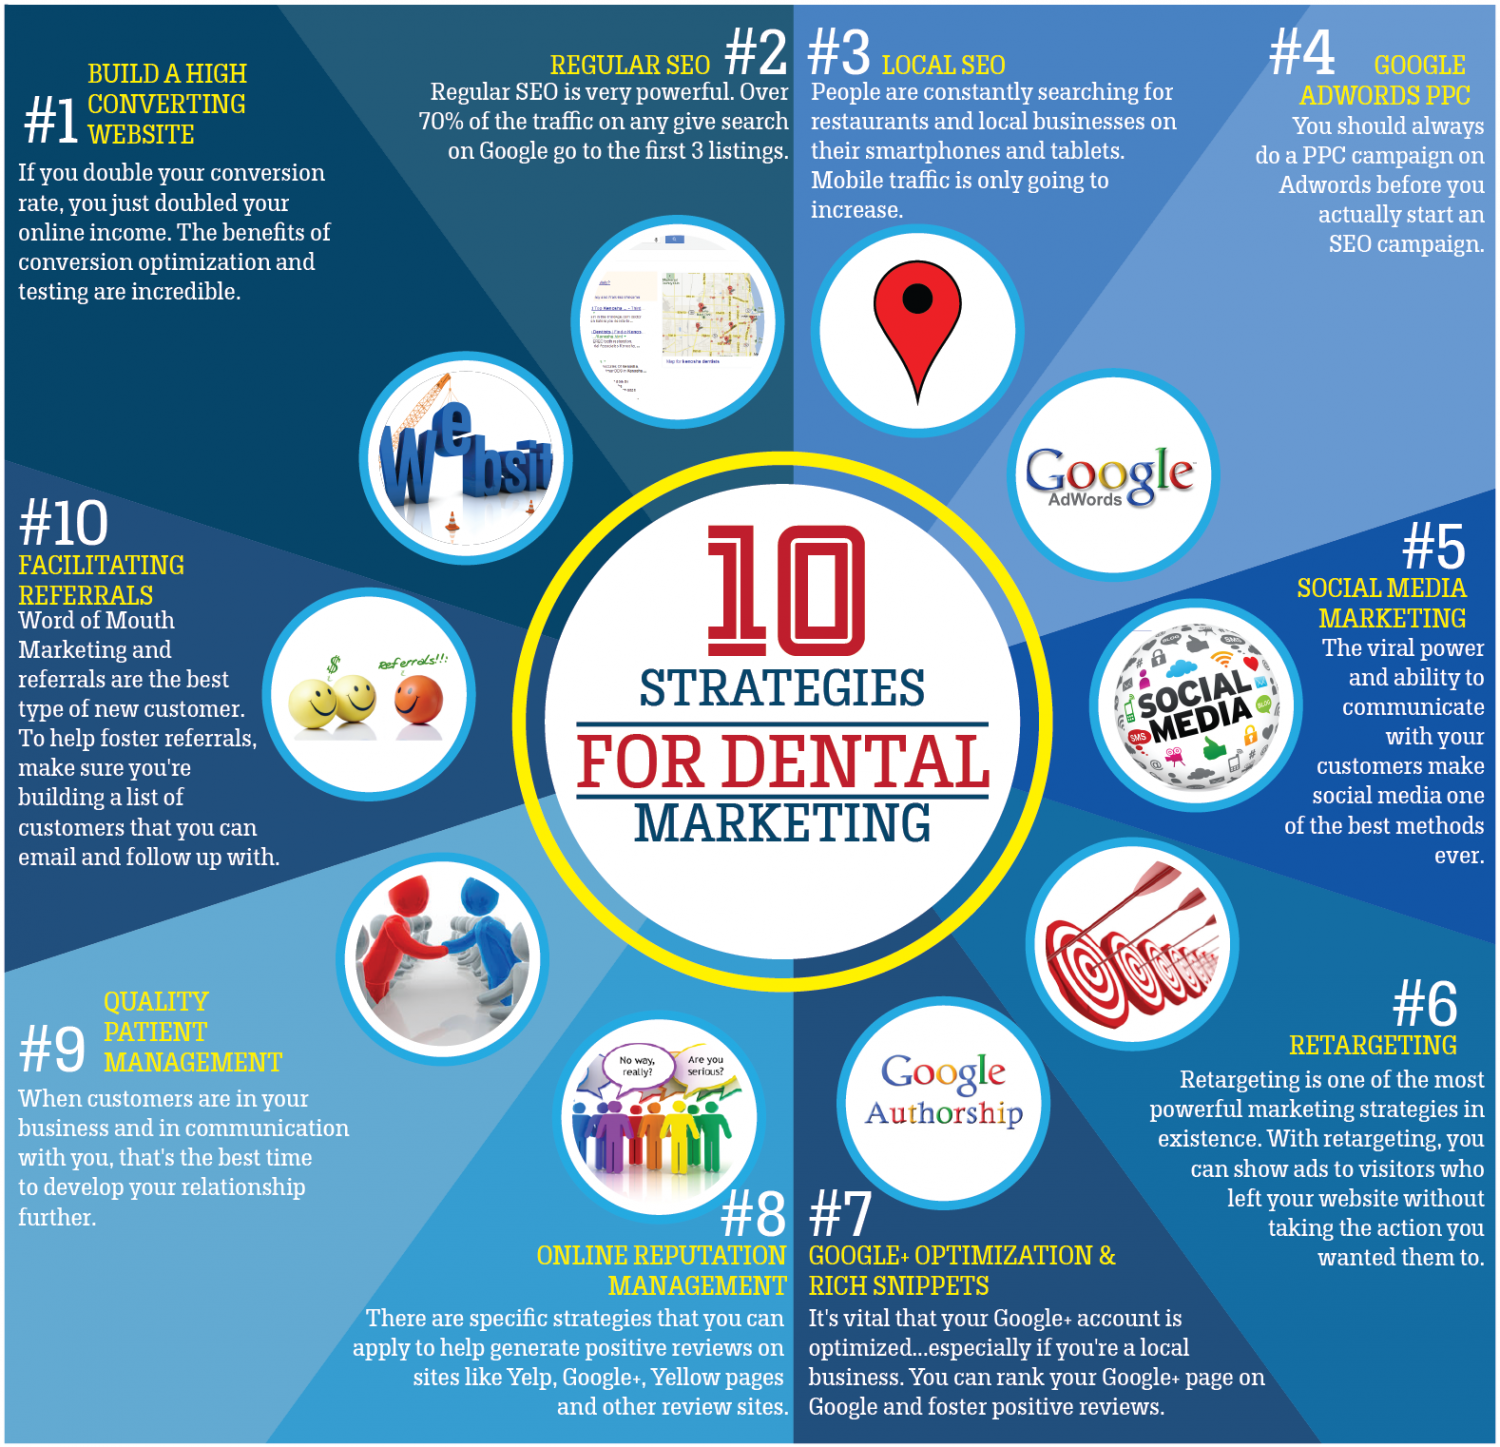 10 Strategies for Dental Marketing  Infographic